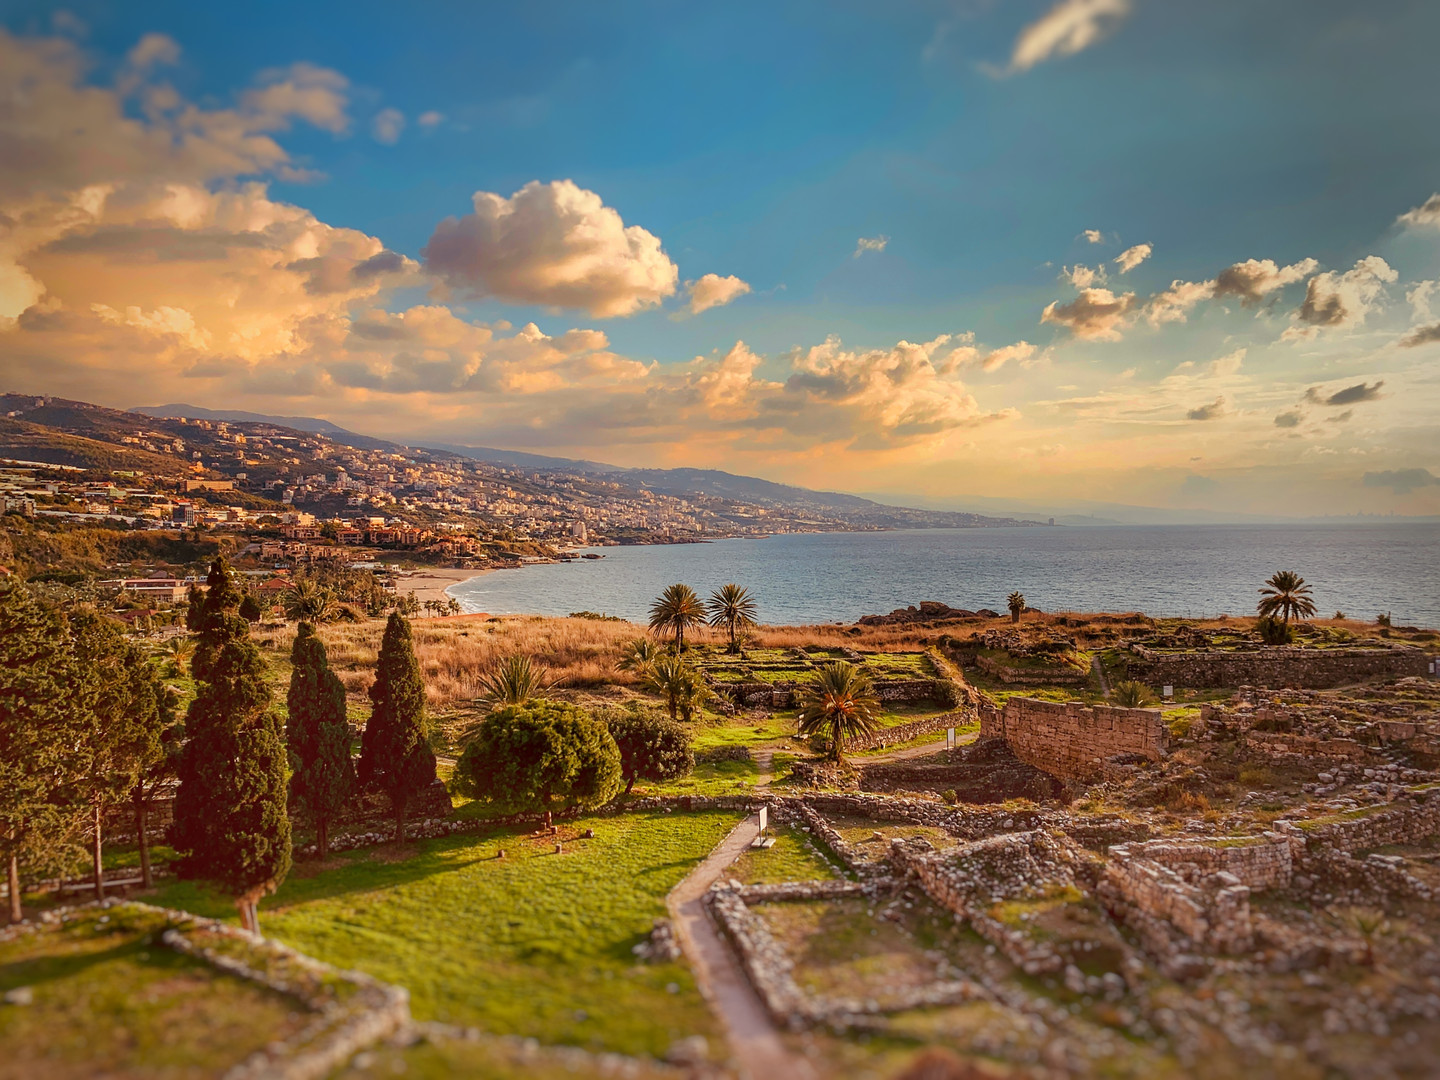 Byblos Viewed from an Antique Region